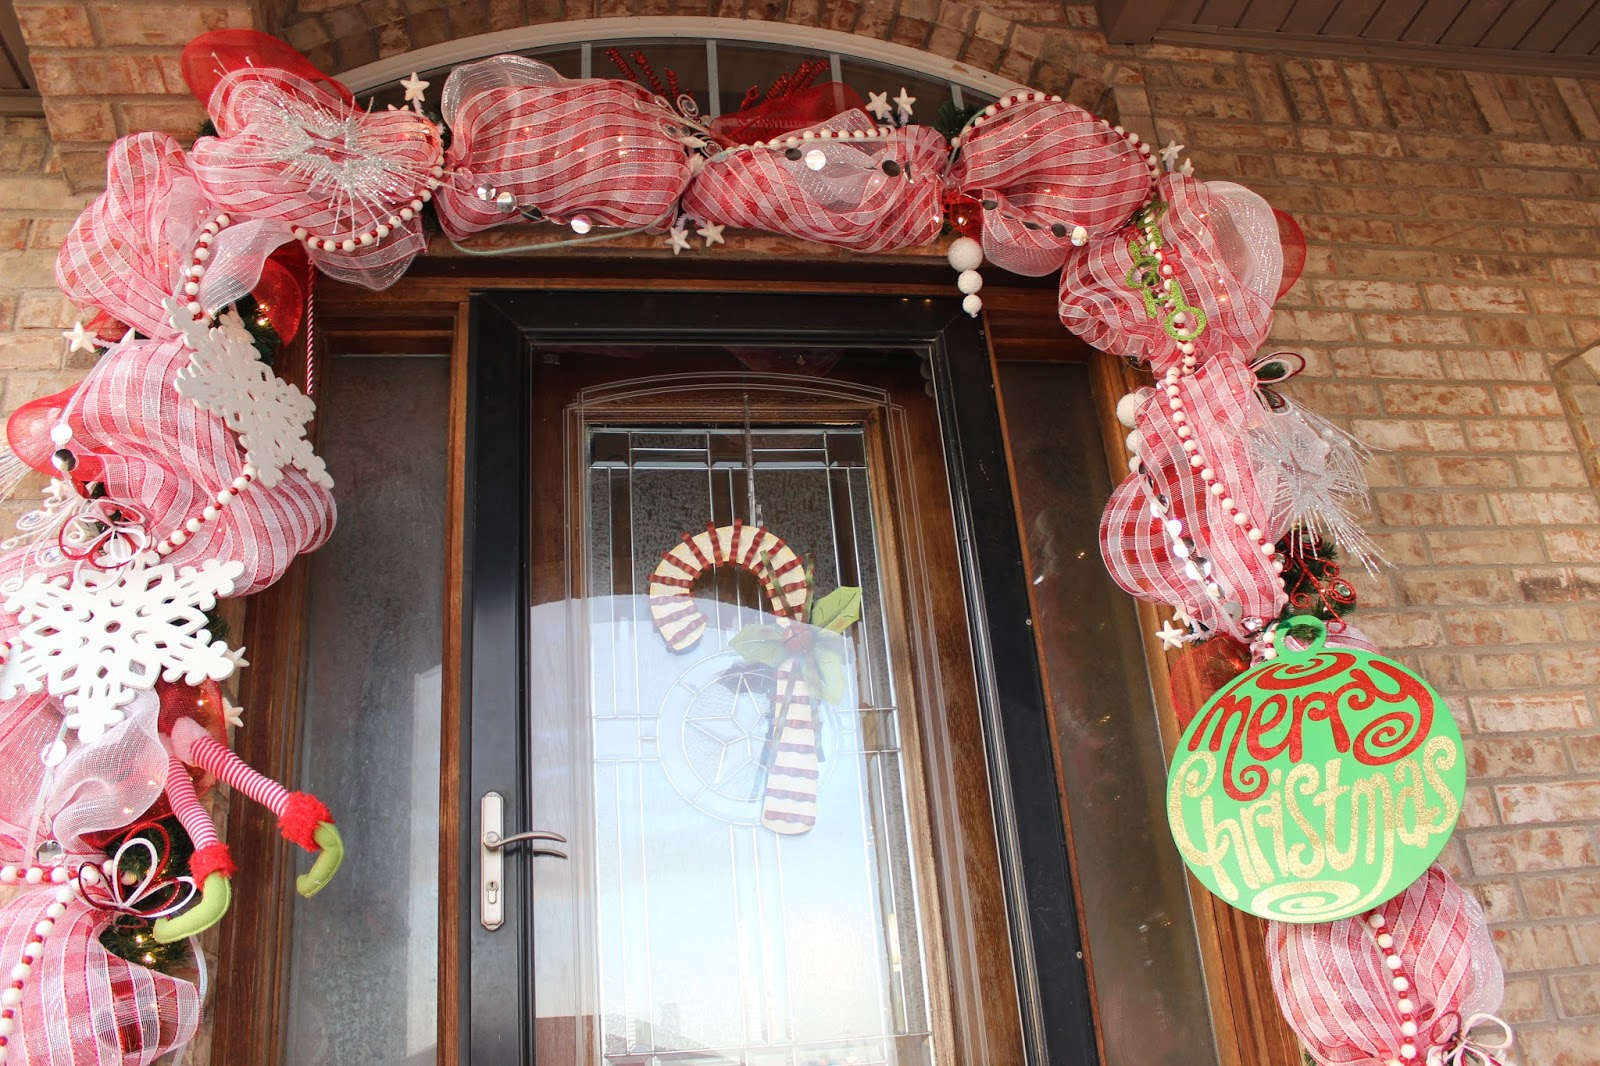 ... I can tie on to my holiday door swags. It\u0027s a handy tip and the items are usually large enough to fill up space on a swag and make it look rich! & My 27 Cents Worth: Christmas Door Swag Made Easy!